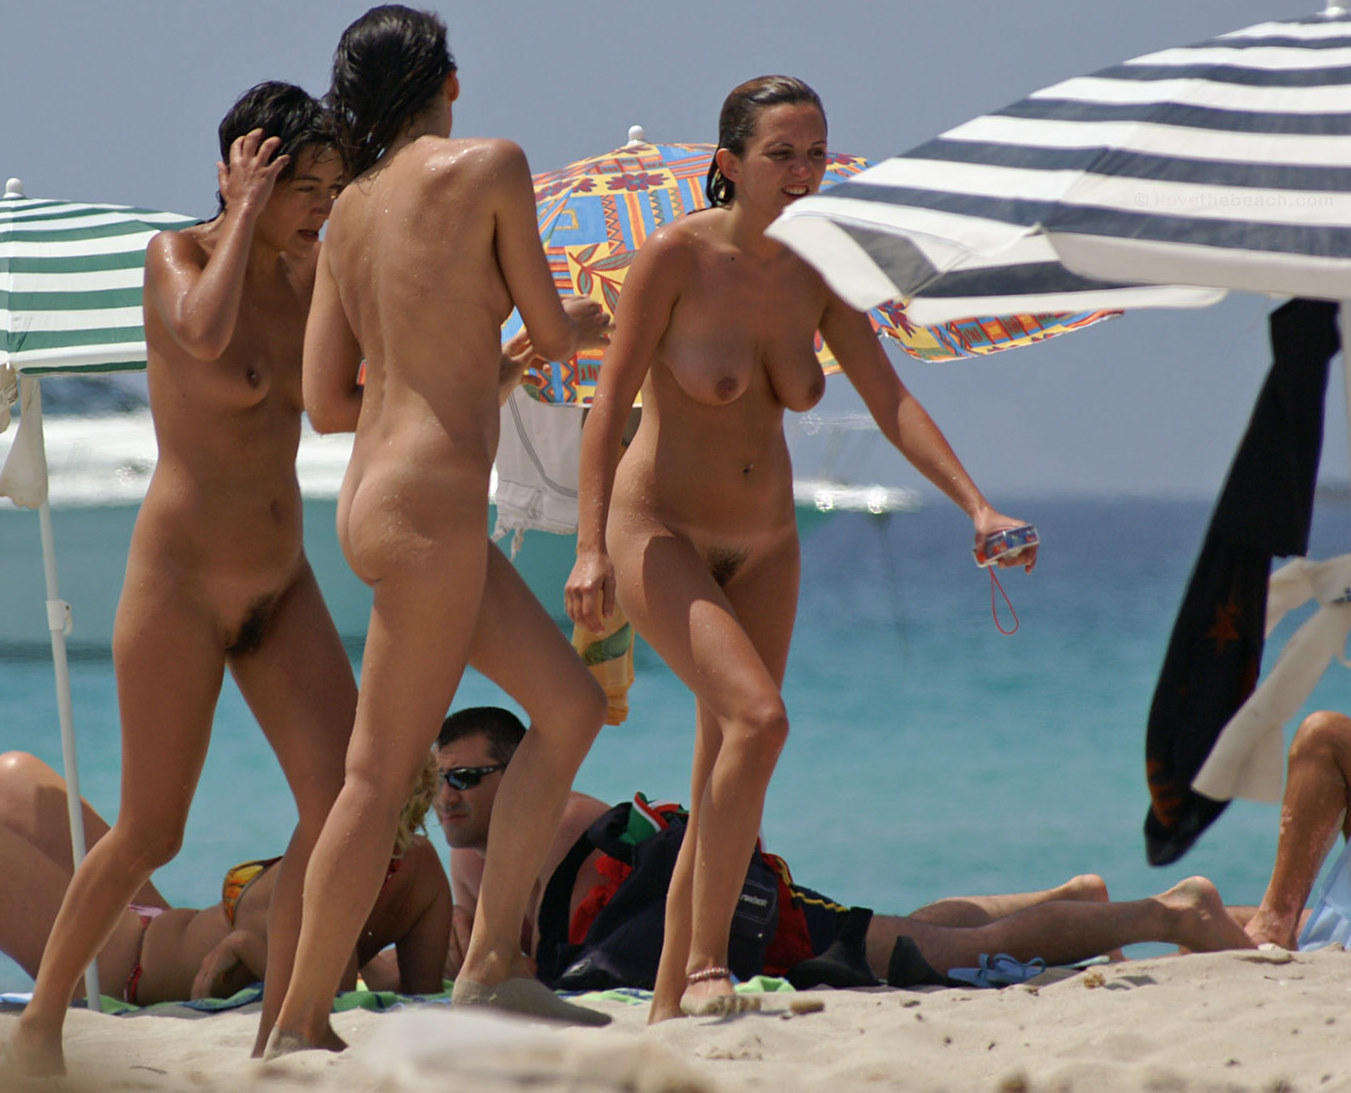 Nude hotties on the sunny beach exposed